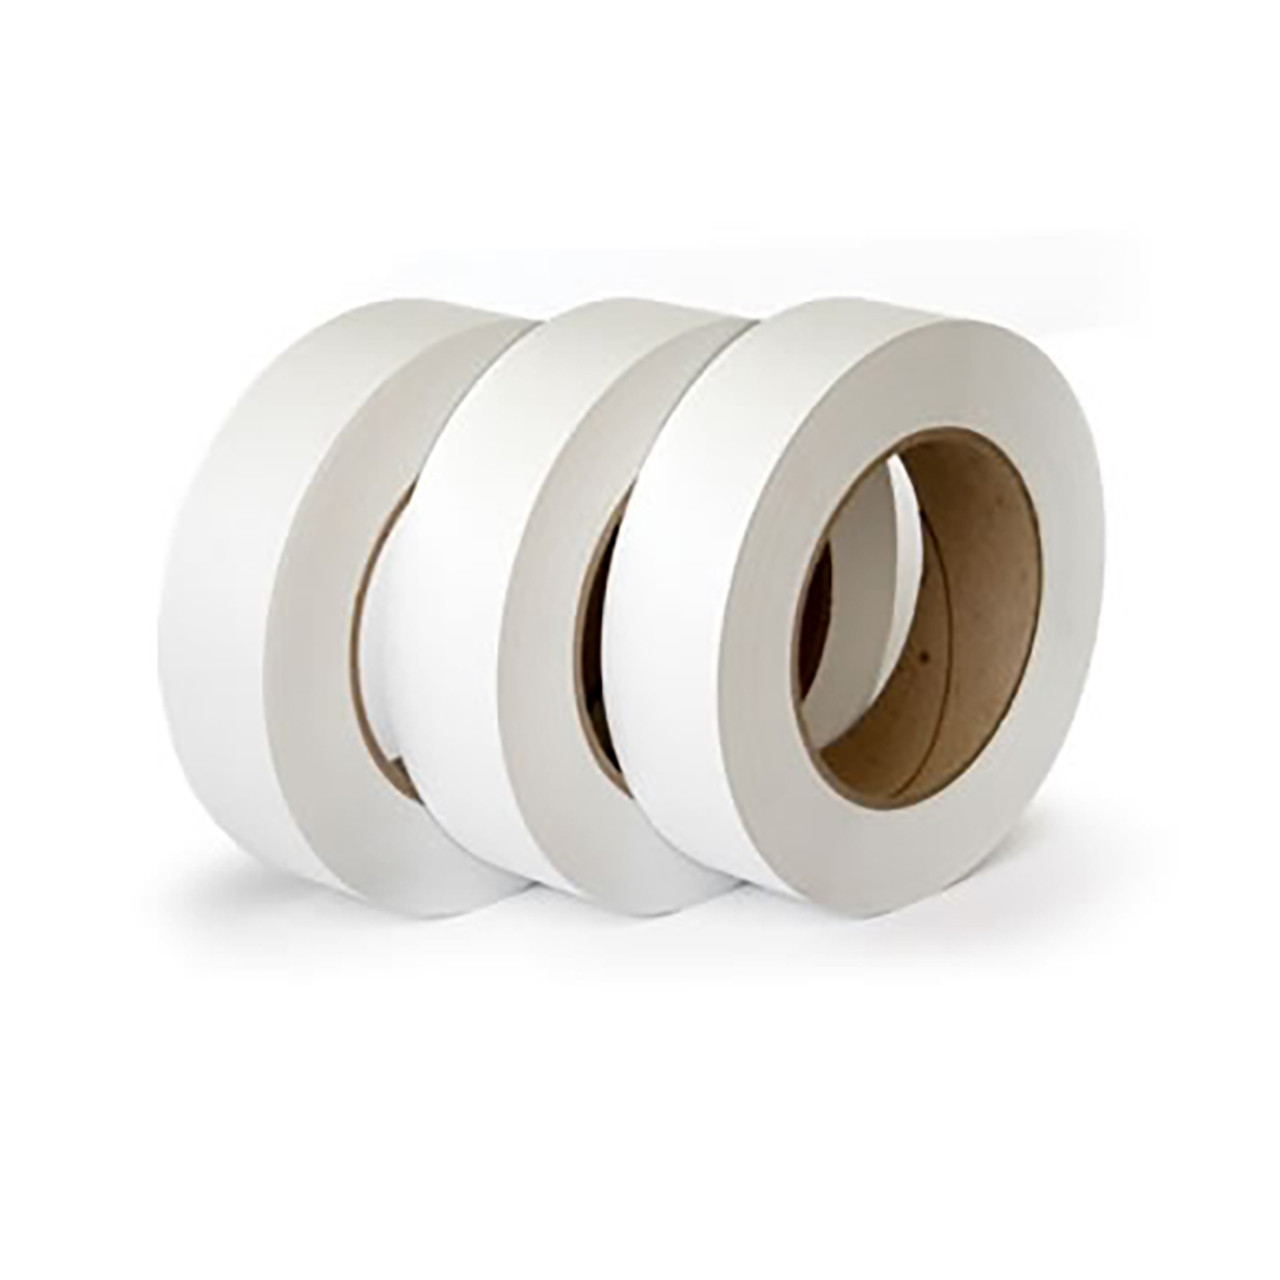 3 Pack Pitney Bowes Connect+ Compatible Label Rolls